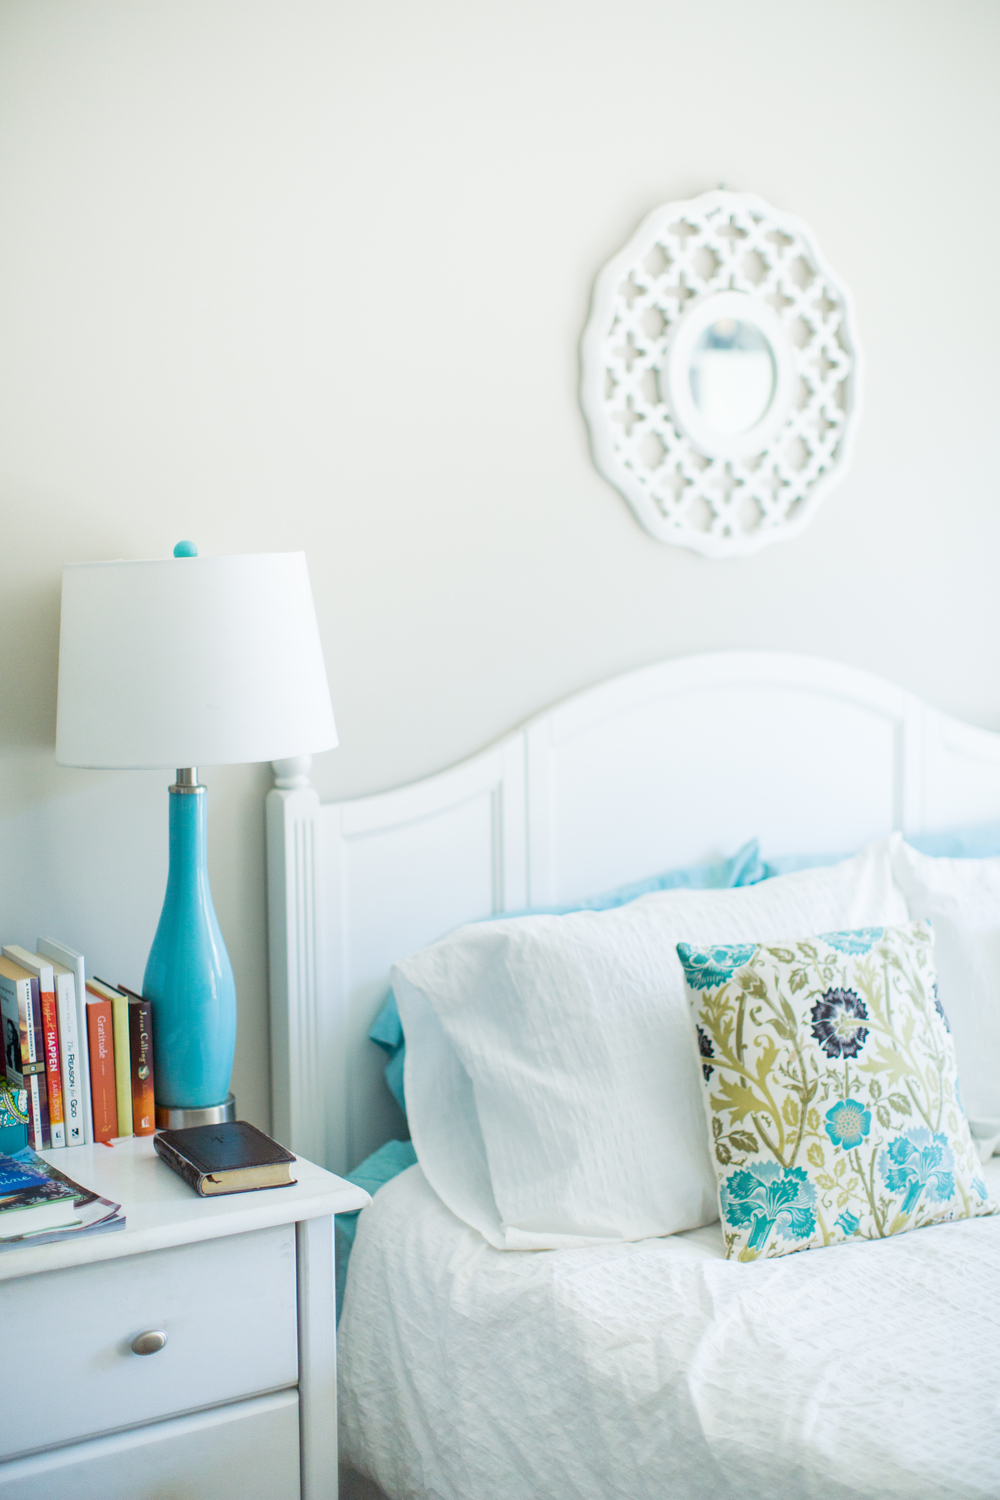 White bedspread inspiration | Relaxing bedroom style | Southern home tour | The School of Styling - theschoolofstyling.com